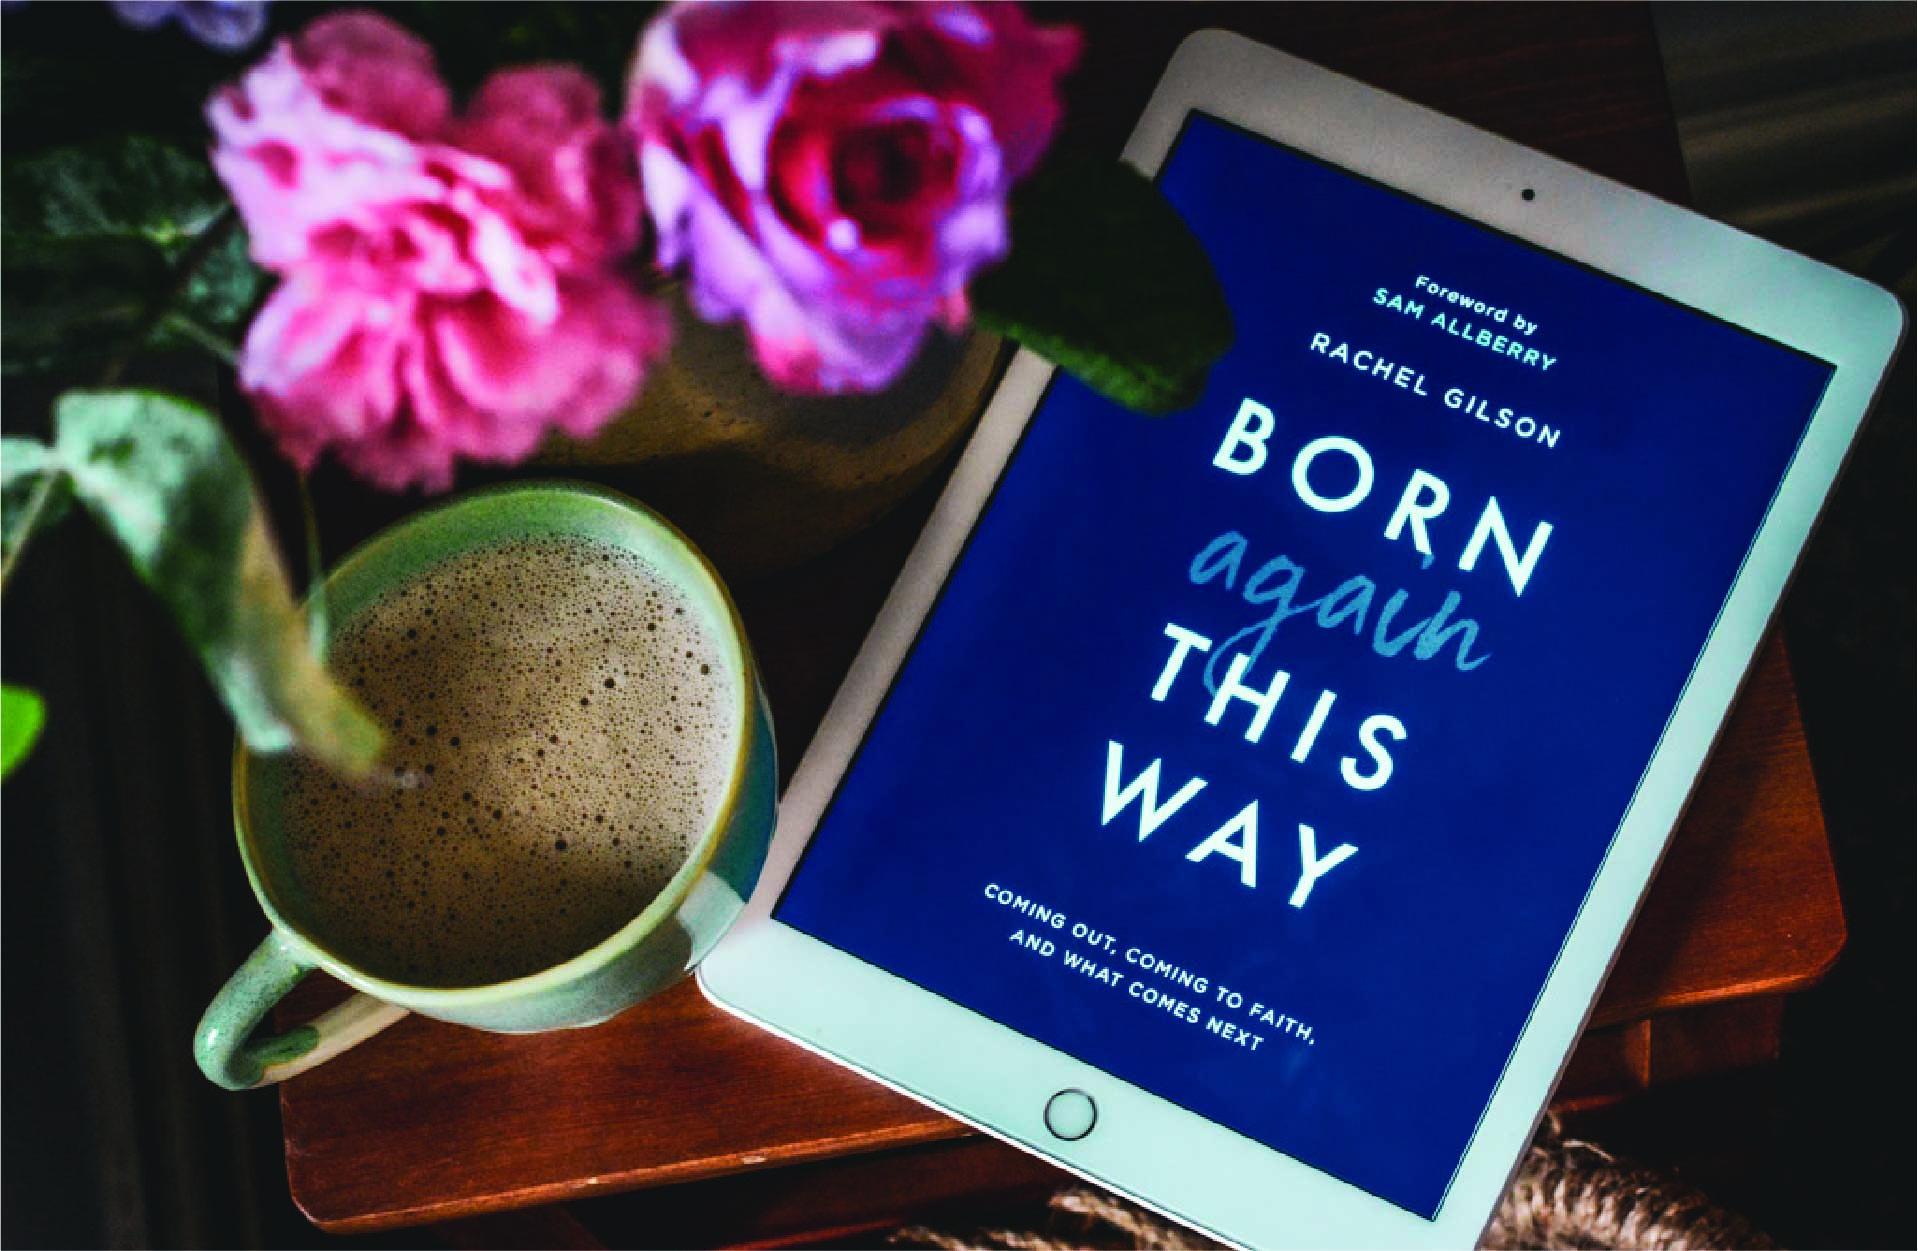 """Born Again This Way"" by Rachel Gilson"